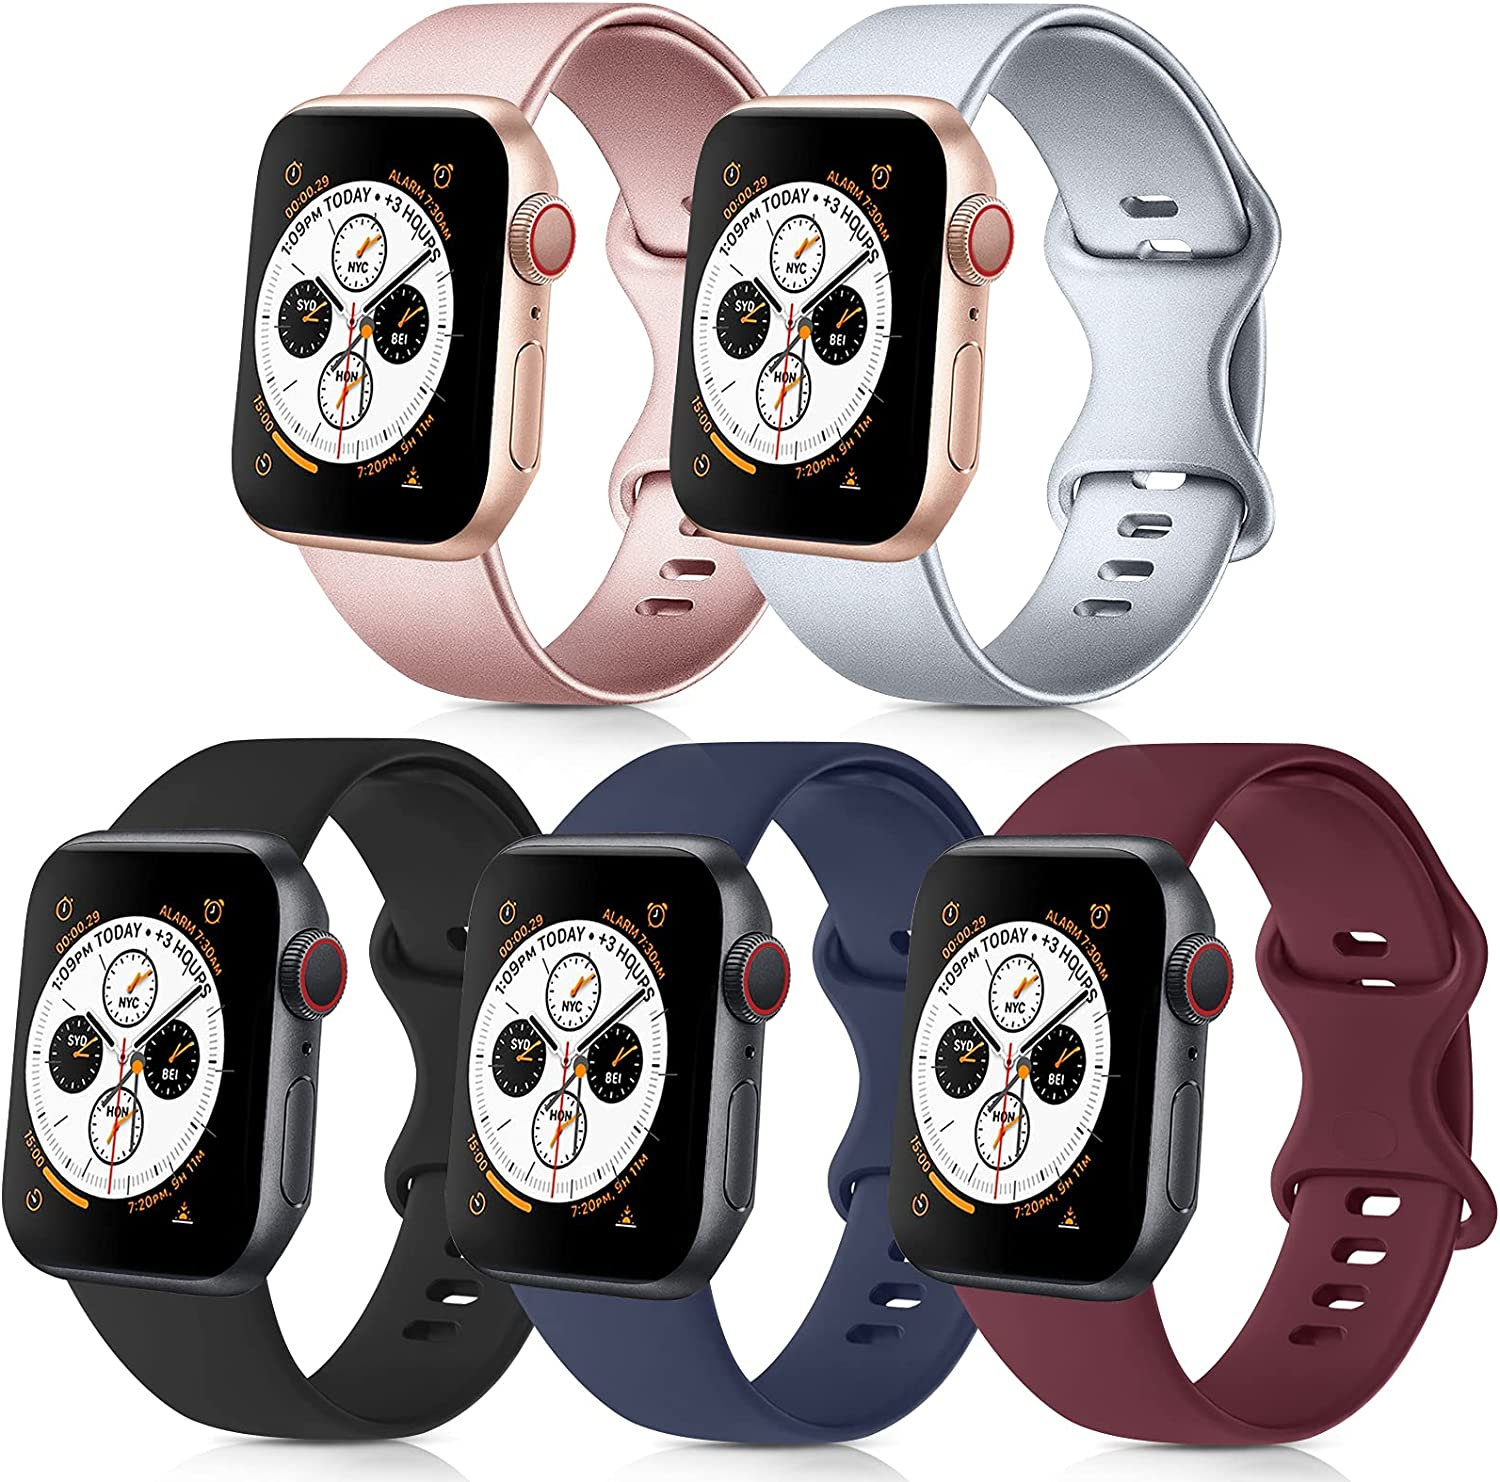 [Pack 5] Compatible with Apple Watch Bands 38mm 40mm for iWatch Series 6 5 4 3 2 1 SE (Black/Rose Gold/Silver/Navy Blue/Wine Red, 38mm/40mm M/L)